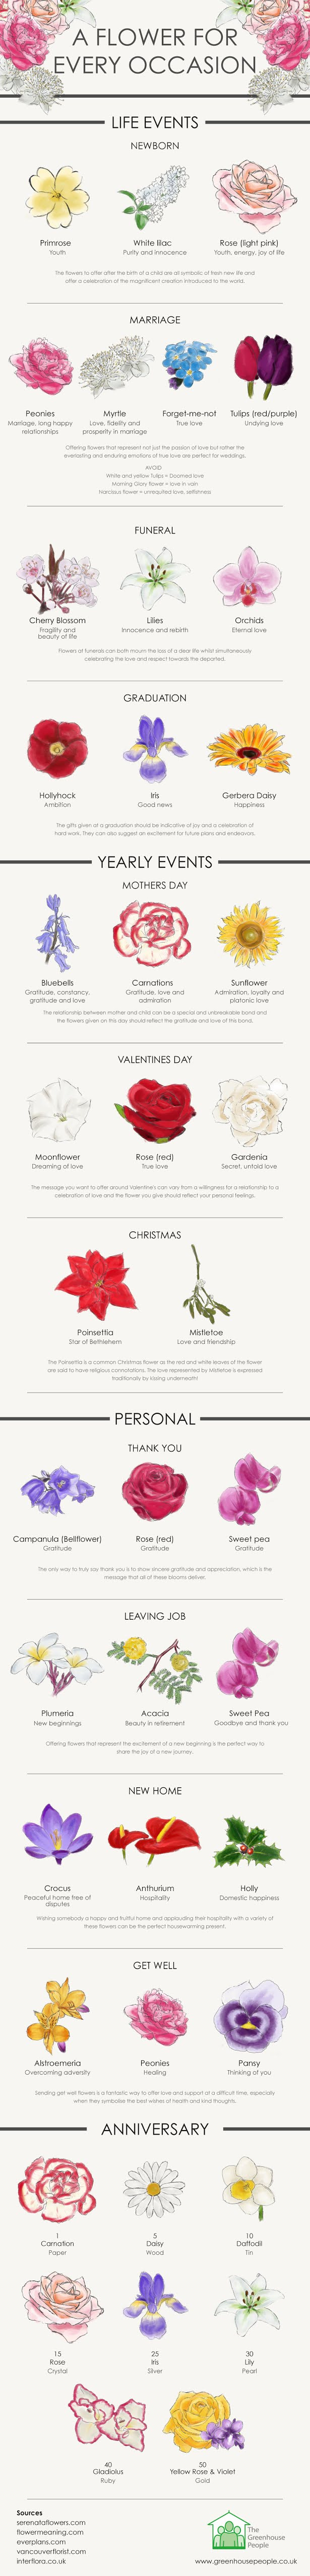 A Flower for every occasion #infographic